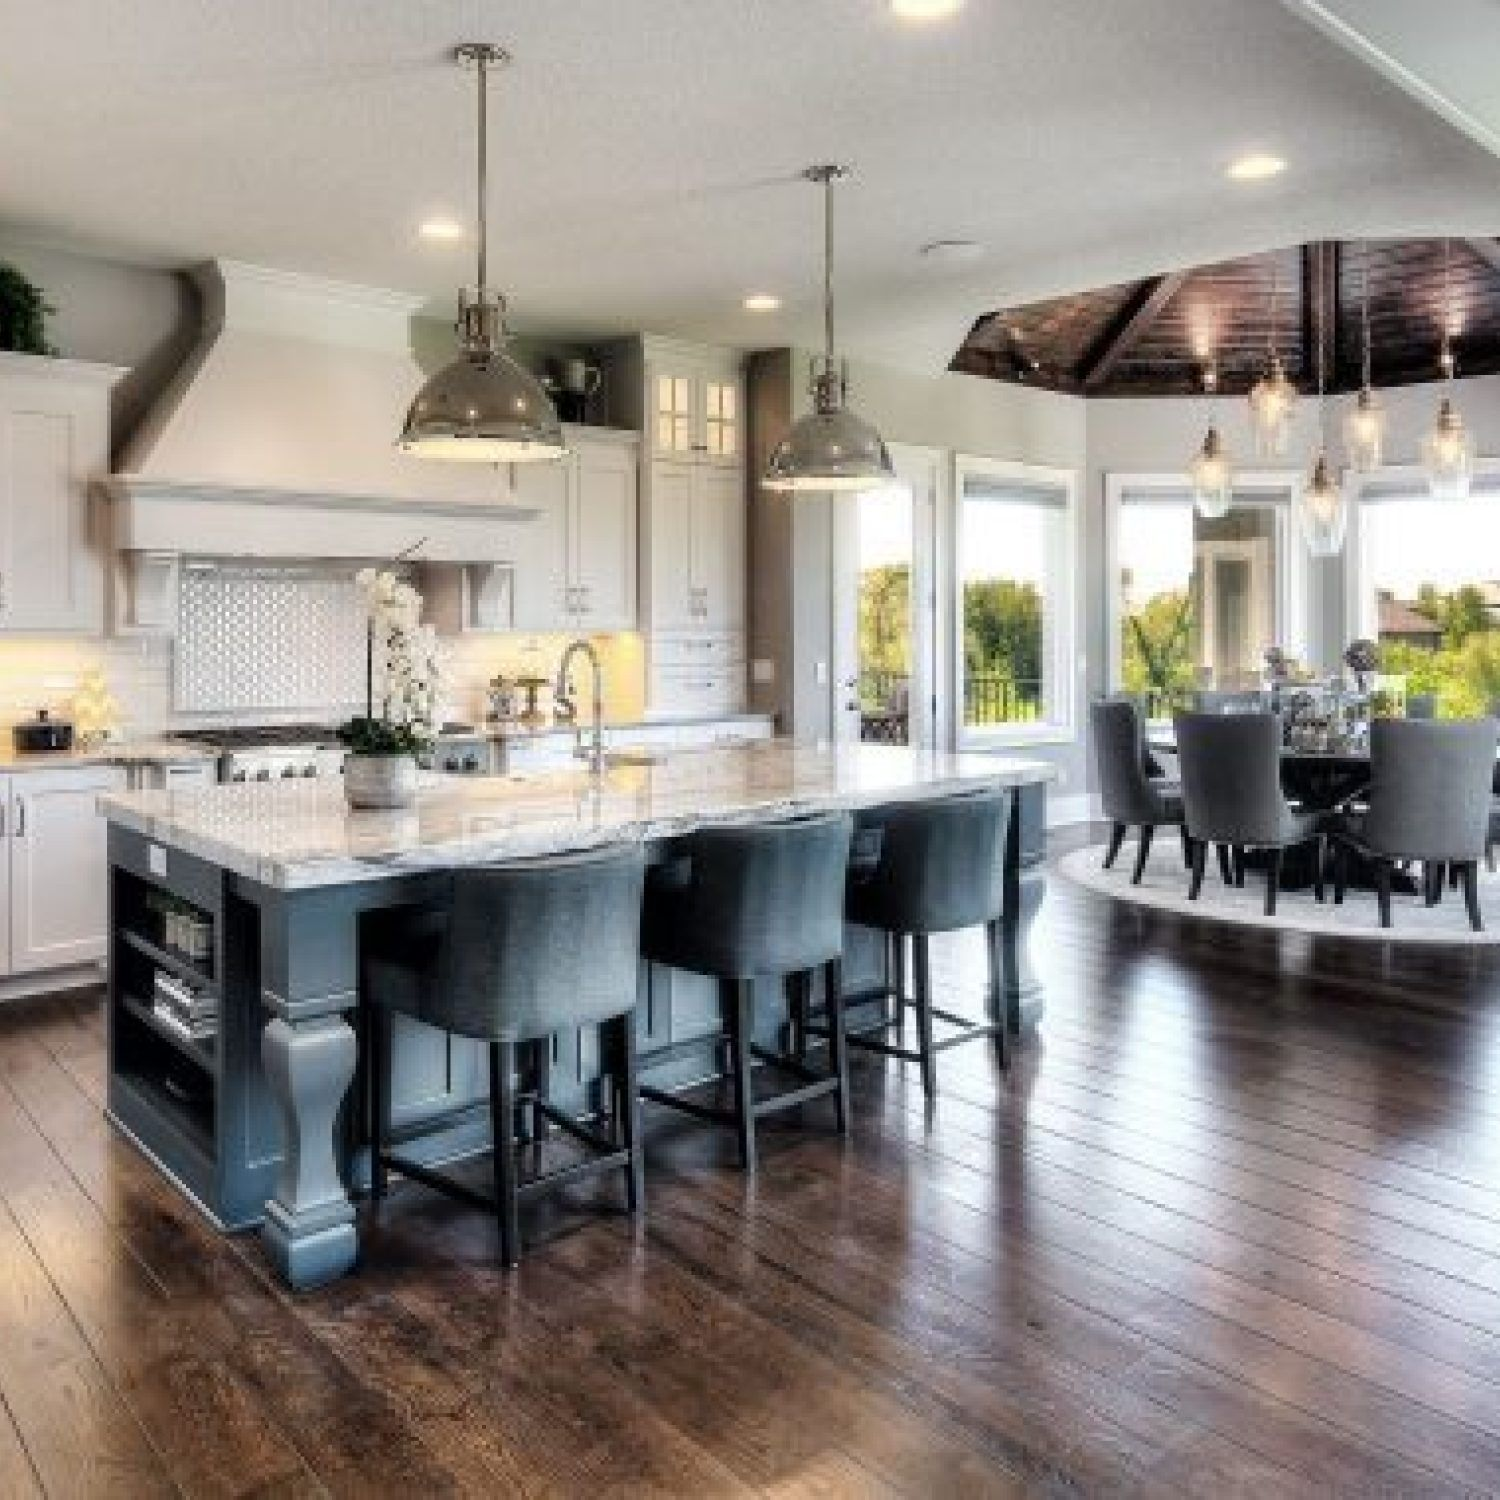 4 the white kitchen design open concept islands pitfall kindledesignhome with images on kitchen remodel with island open concept id=77105